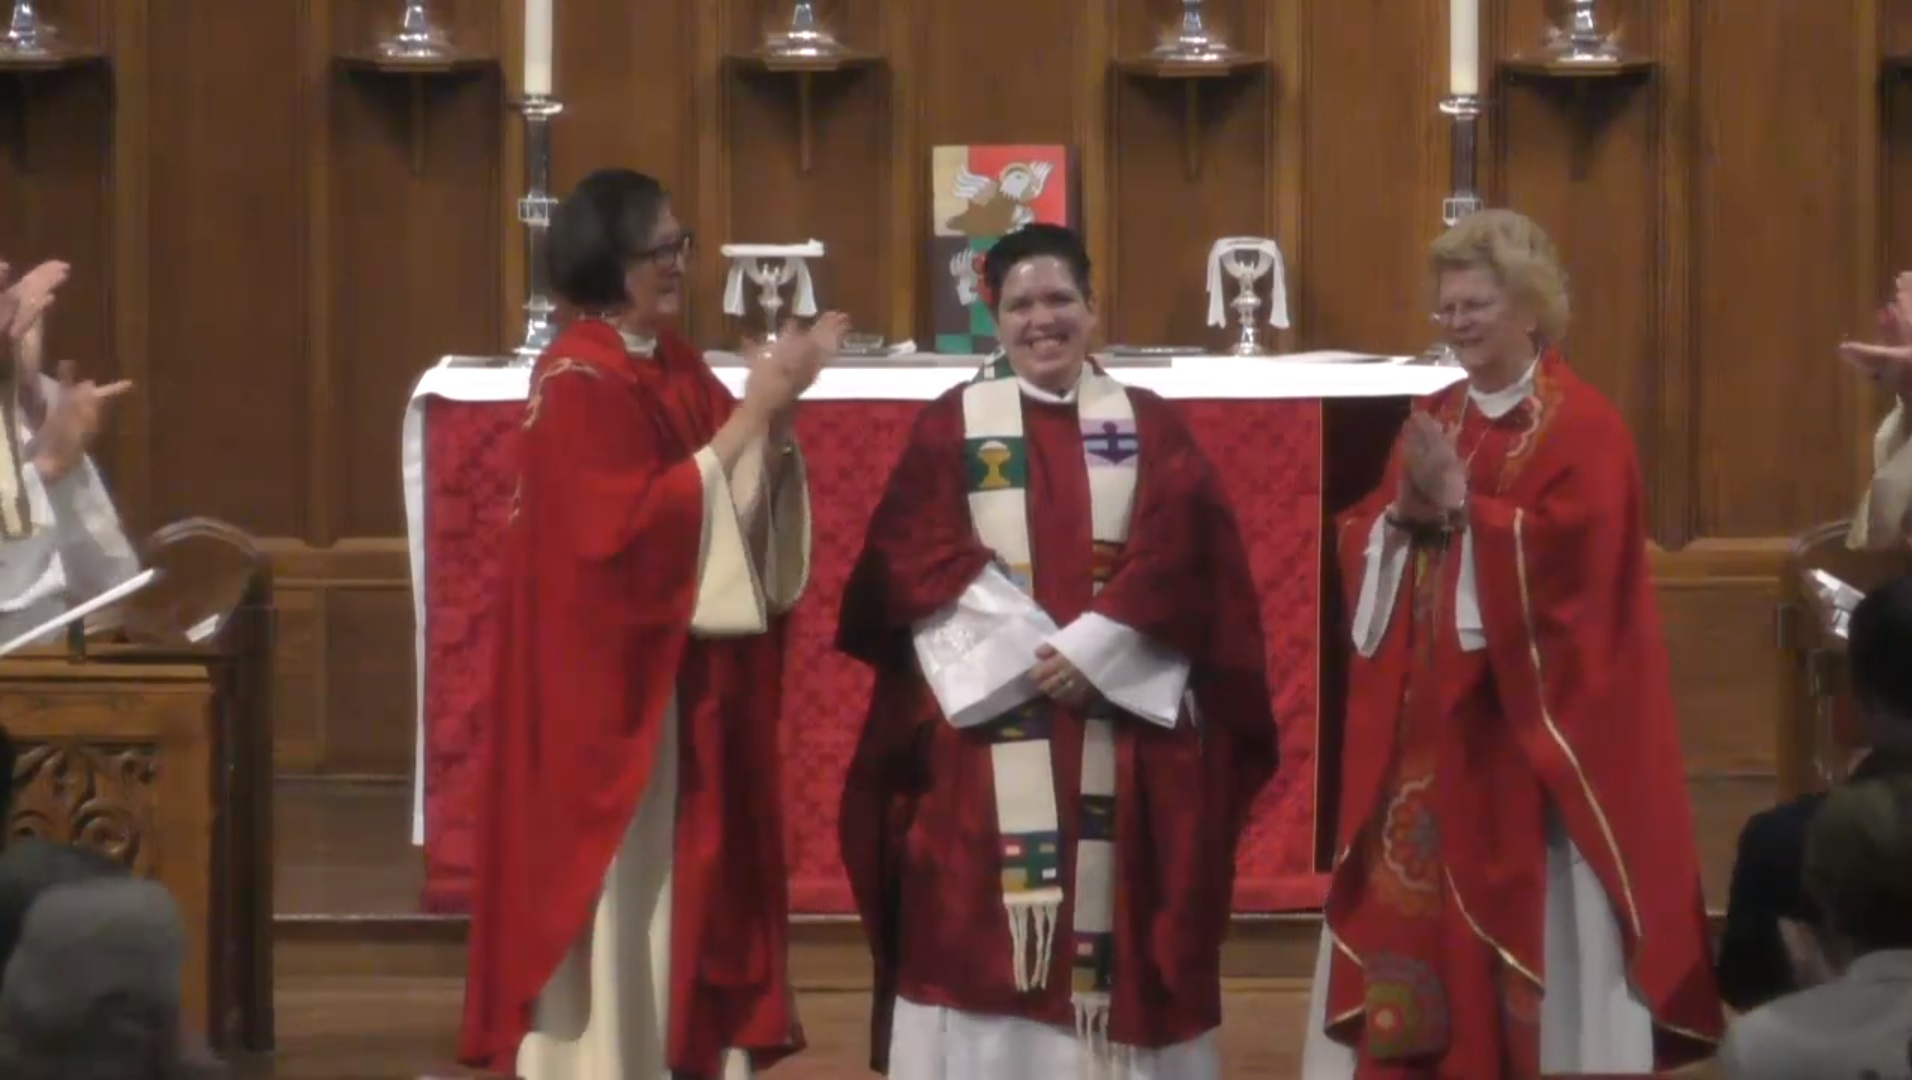 Non-binary Catholic priest Rev. Kori Pacyniak, the newly-ordained pastor of San Diego's Mary Magdalene Apostle Catholic Community